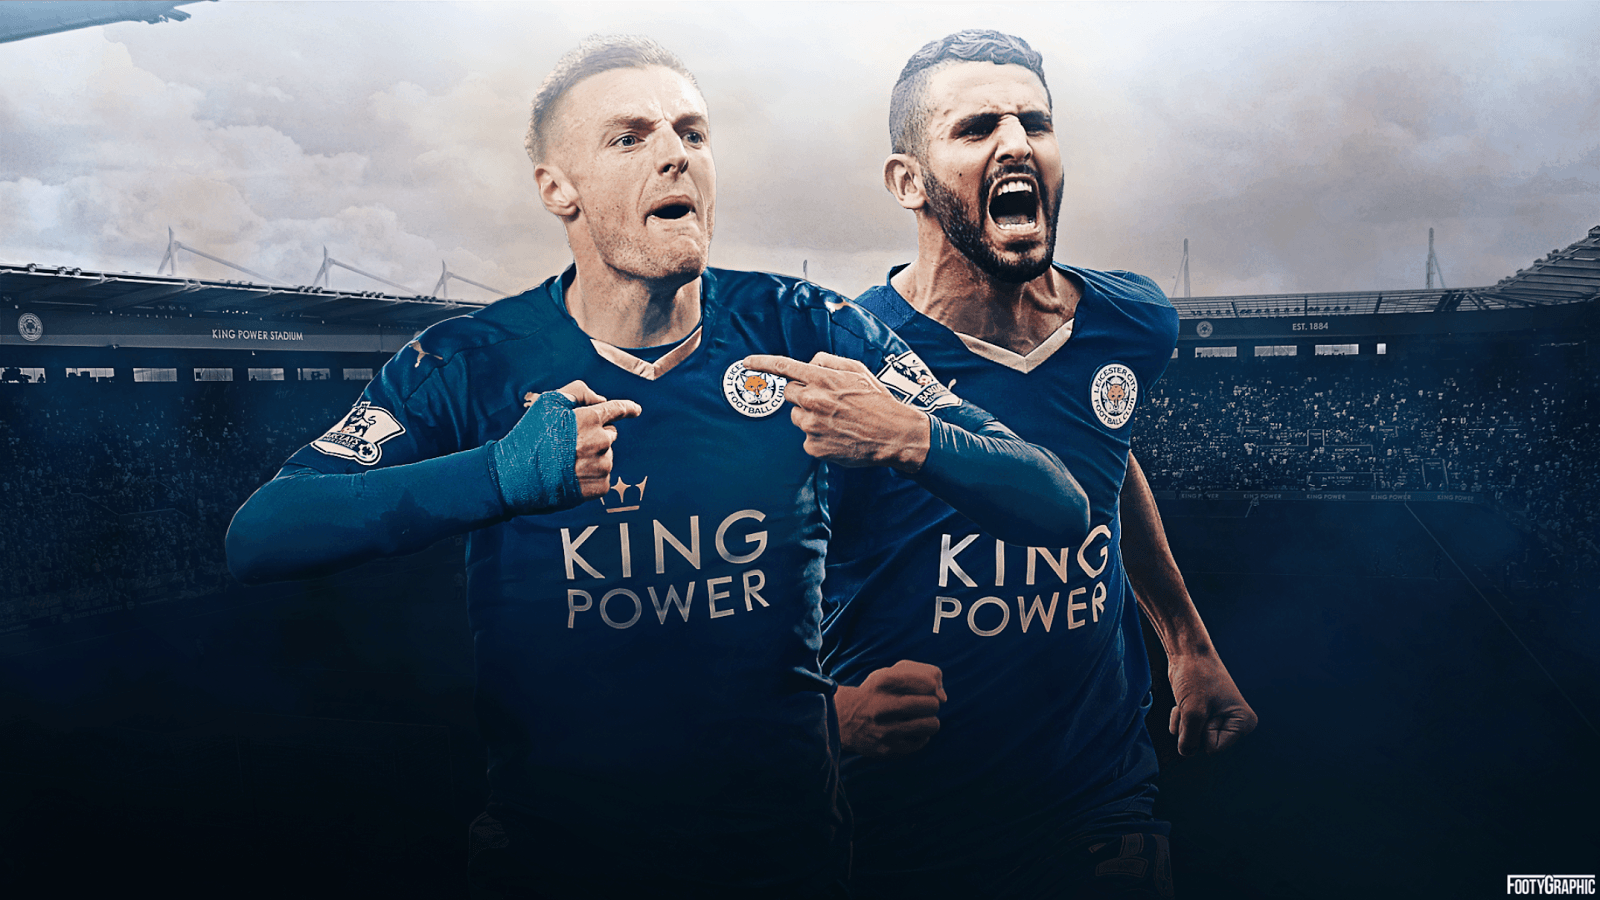 Leicester City Wallpaper Free Download - HD Wallpapers,Desktop ...